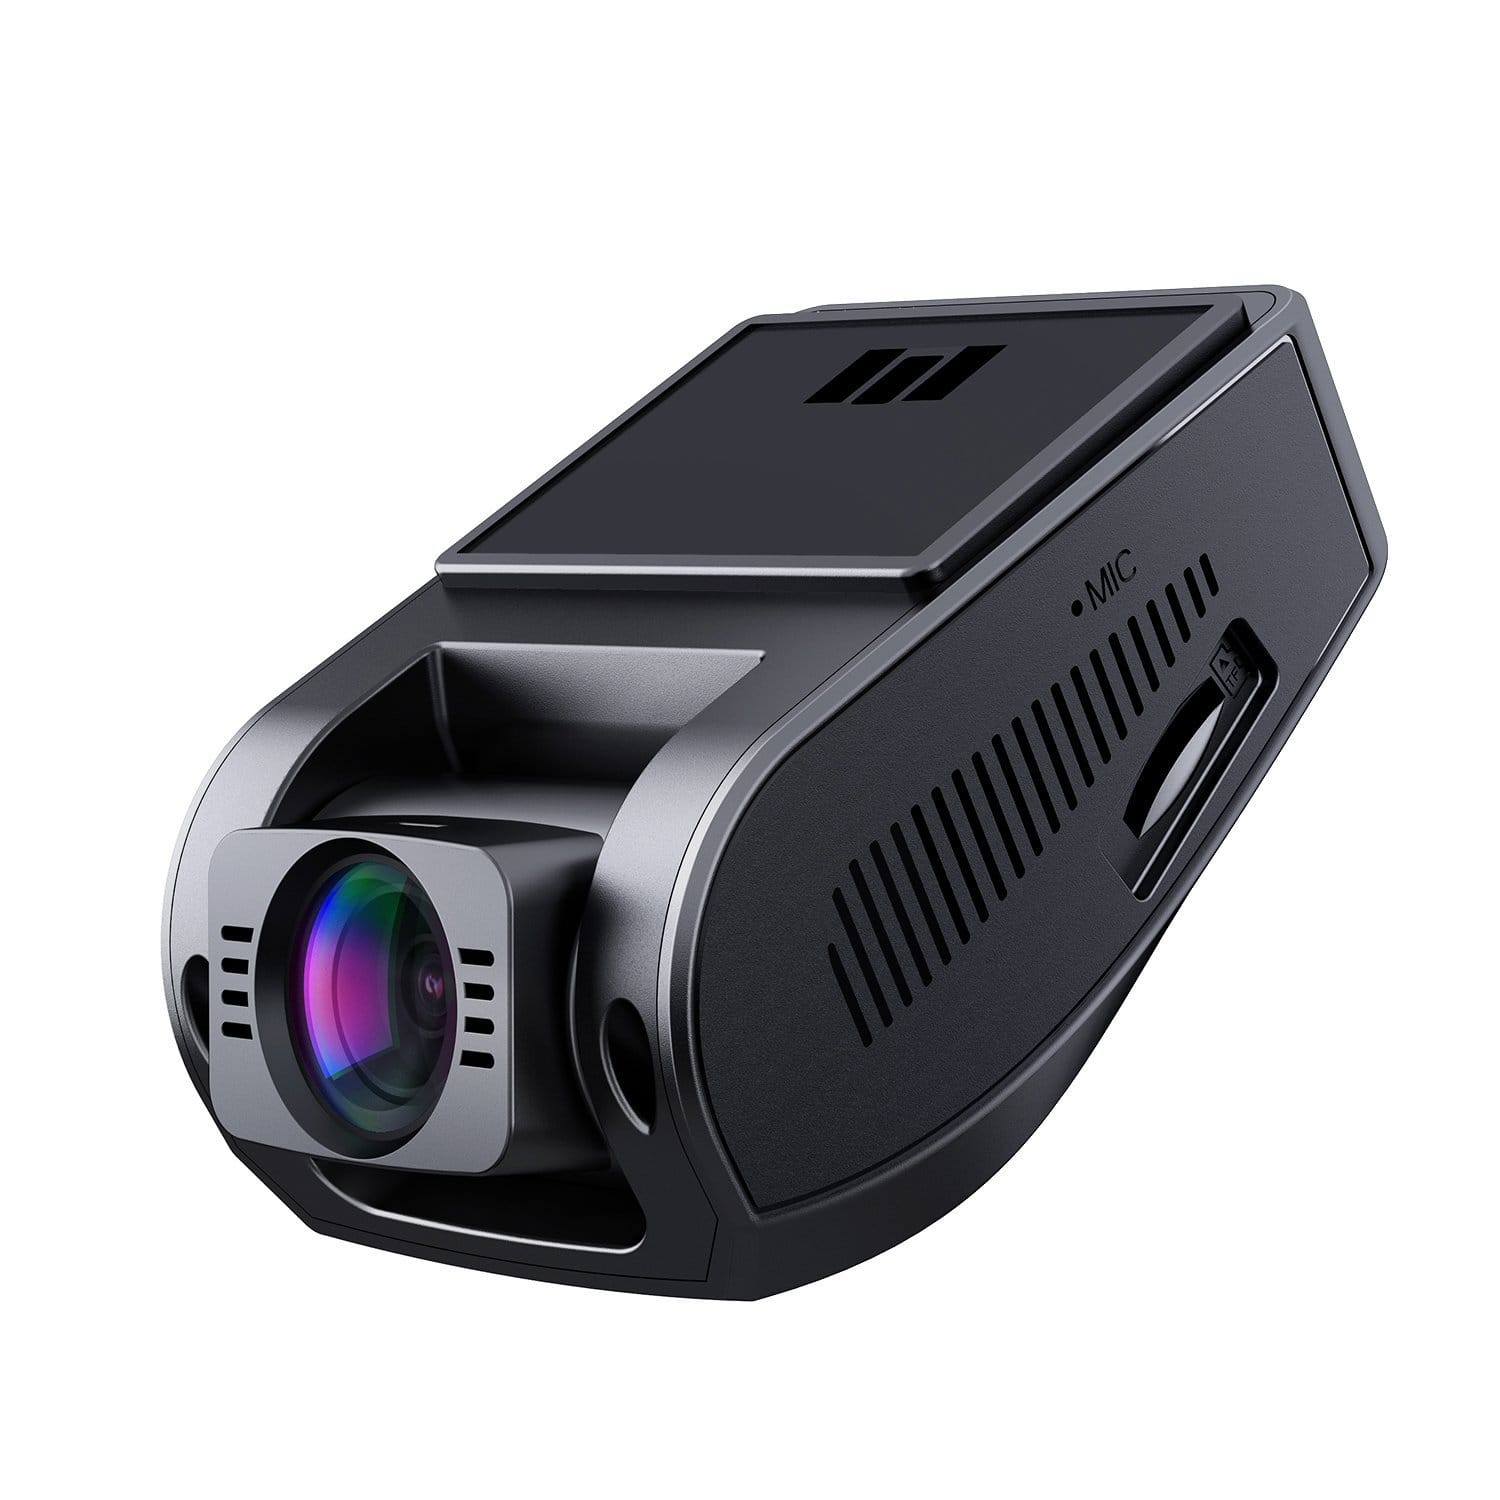 AUKEY DR02 1080p Dash Cam $59.49  + FS - Amazon Lightning Deal